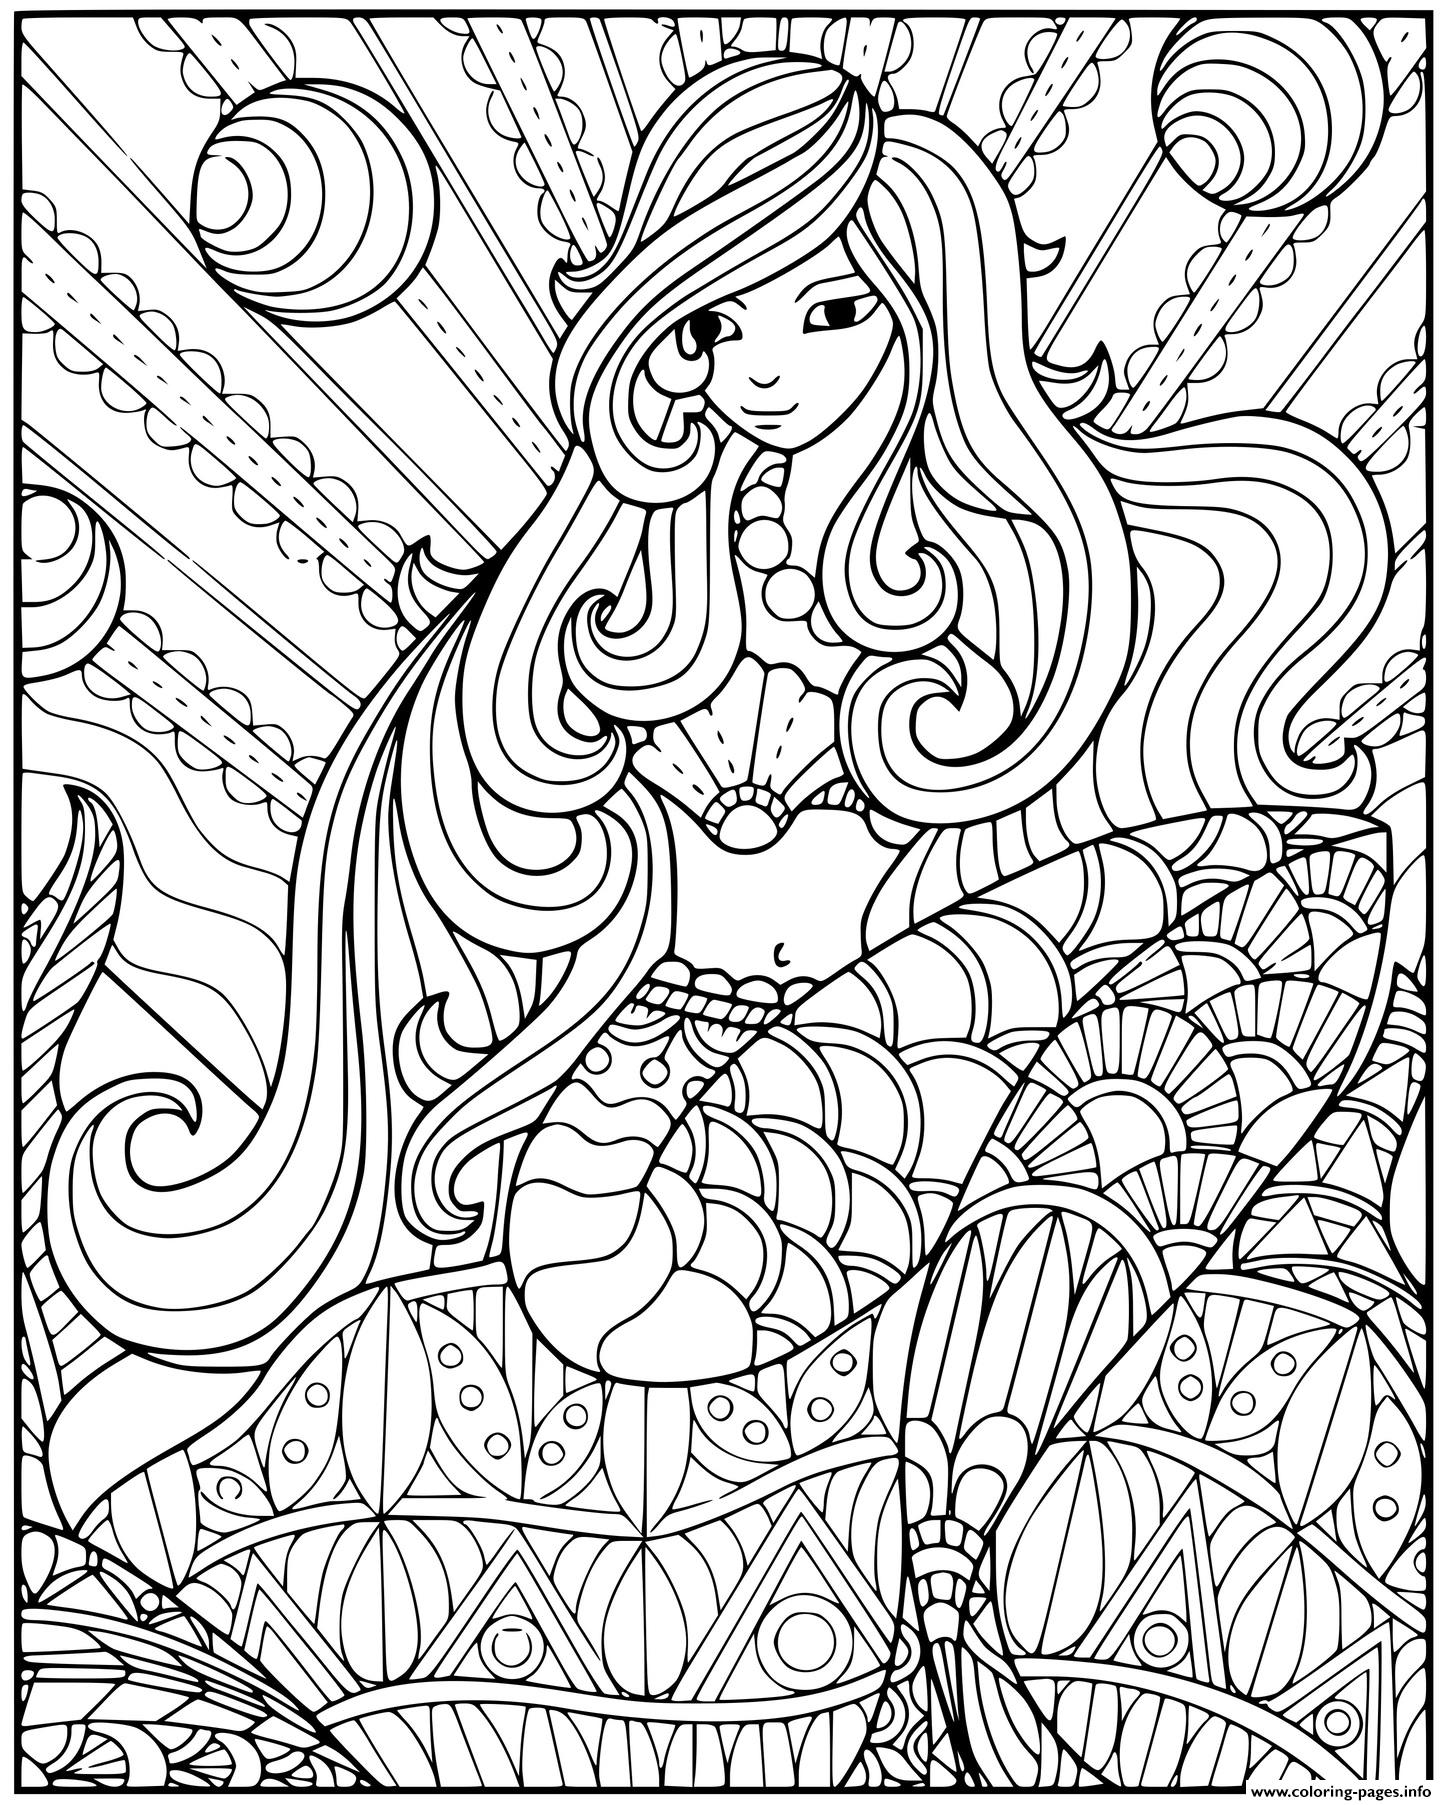 Enchanting Mermaid With Lots Of Patterns coloring pages